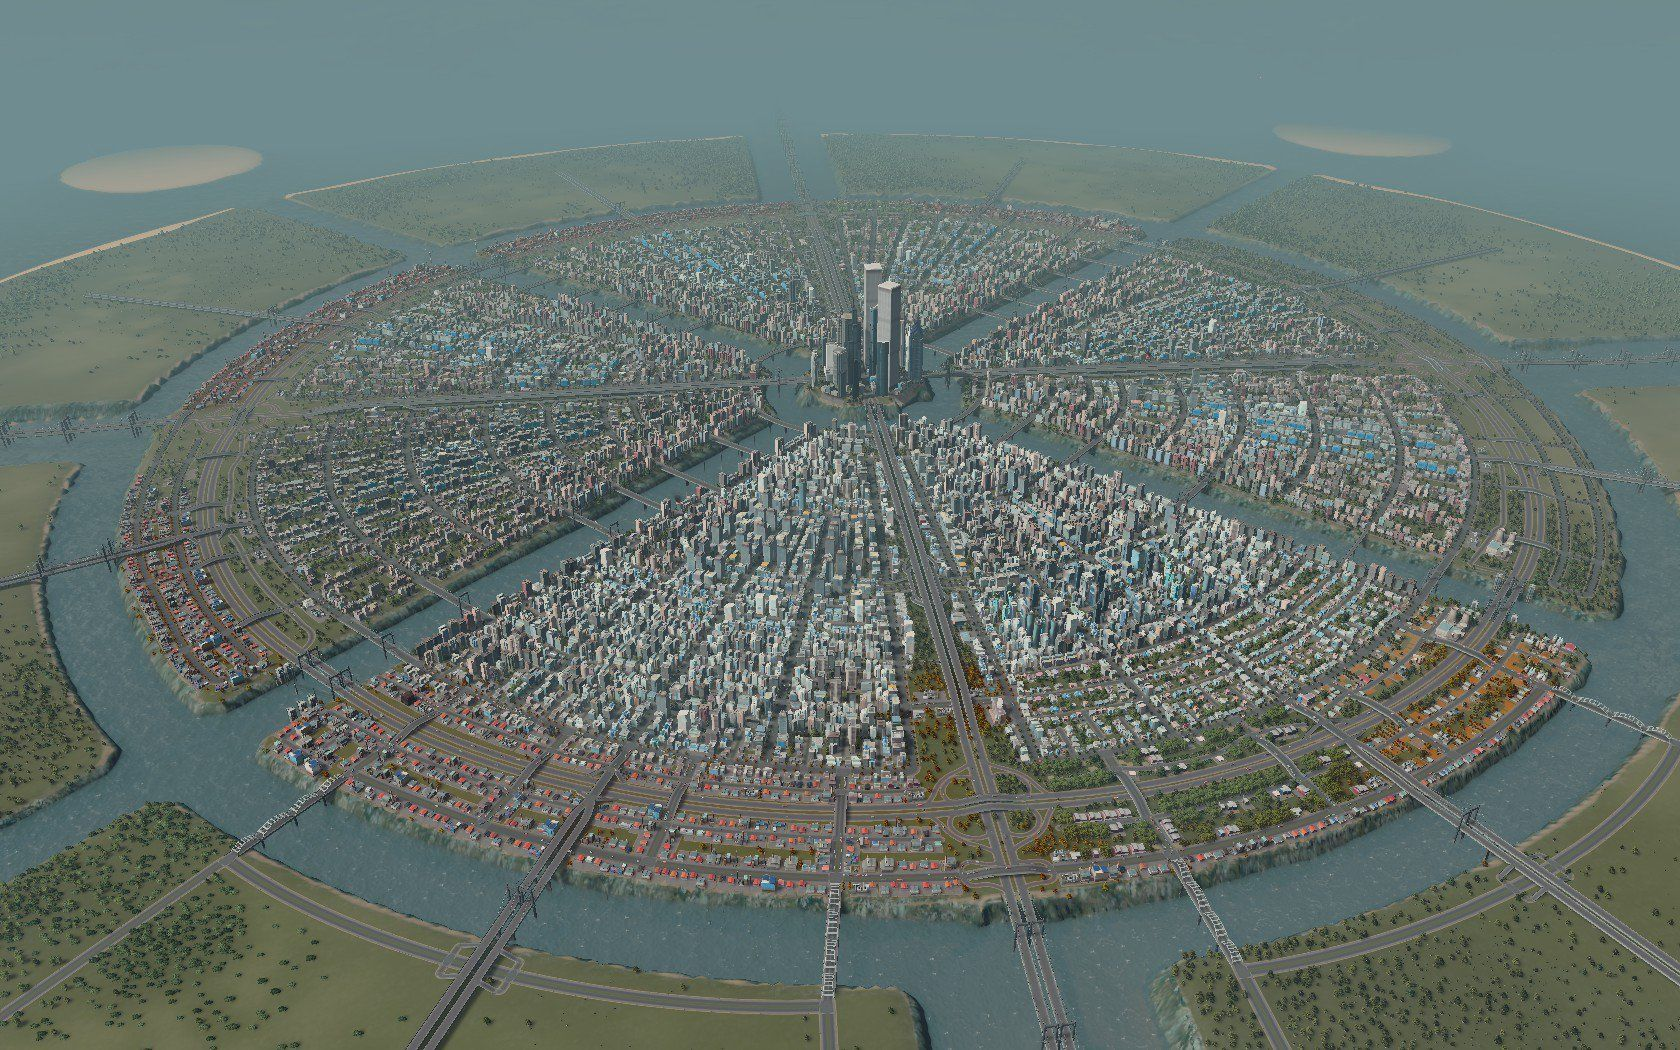 Nearly two years later, Cities: Skylines is almost ready on